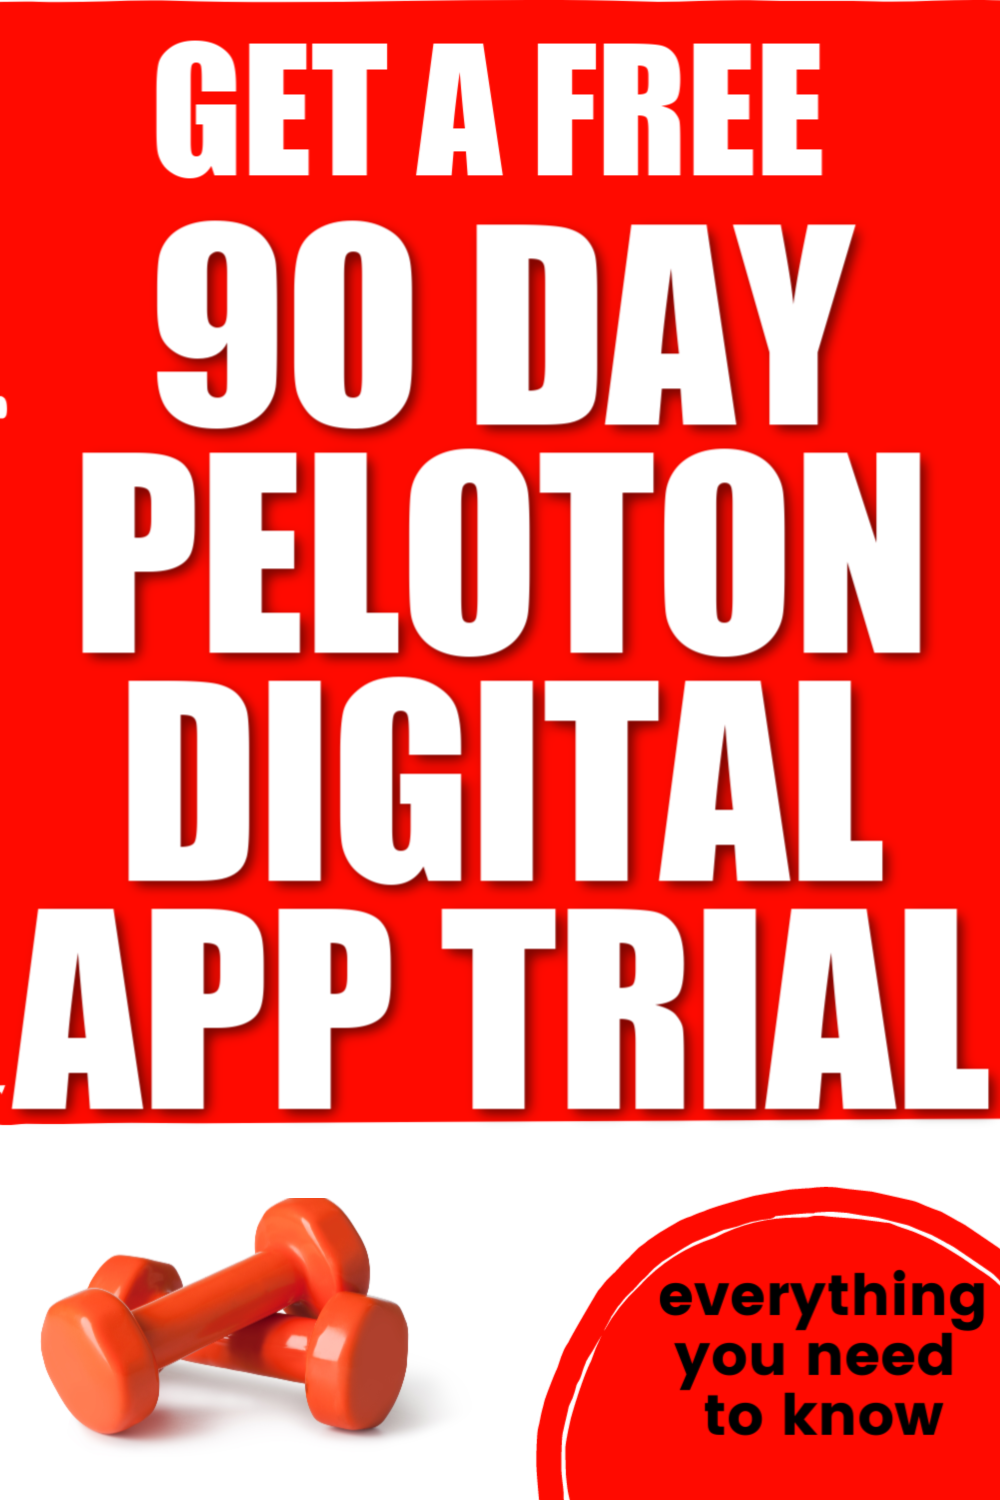 Can You Watch Tv On Peloton How To Get The Peloton Cycle Experience Without The Price Tag In 2020 How To Stay Healthy Biking Workout At Home Workouts